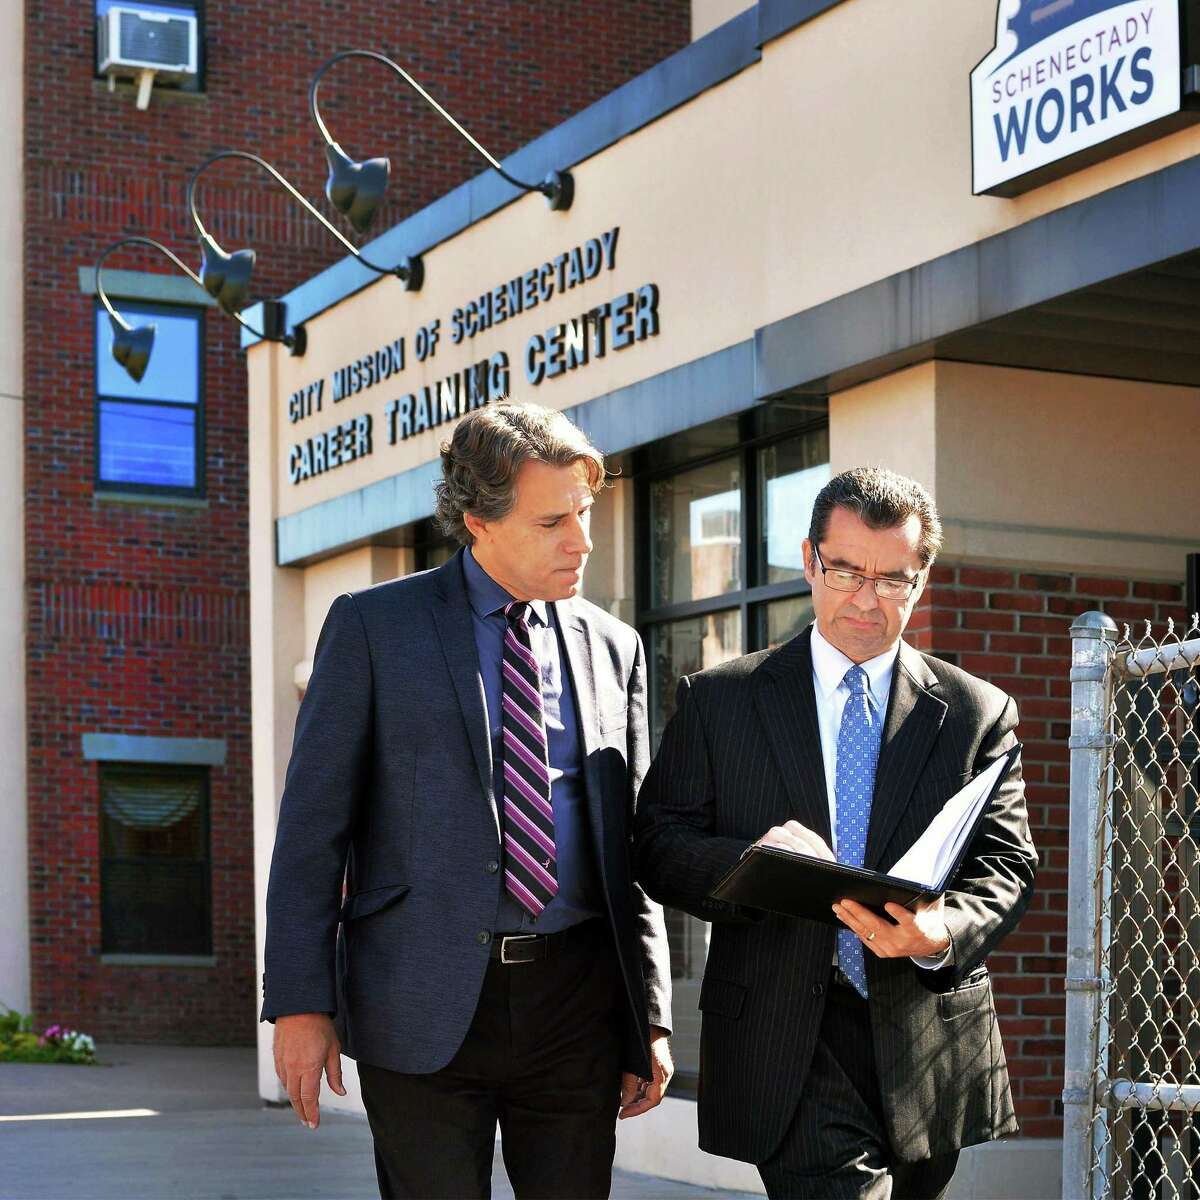 Bob Carreau, left, of the Schenectady Foundation and Mike Saccocio of the City Mission outside the Schenectady Works Career Training Center Wednesday Sept. 23, 2015 in Schenectady, NY. (John Carl D'Annibale / Times Union)